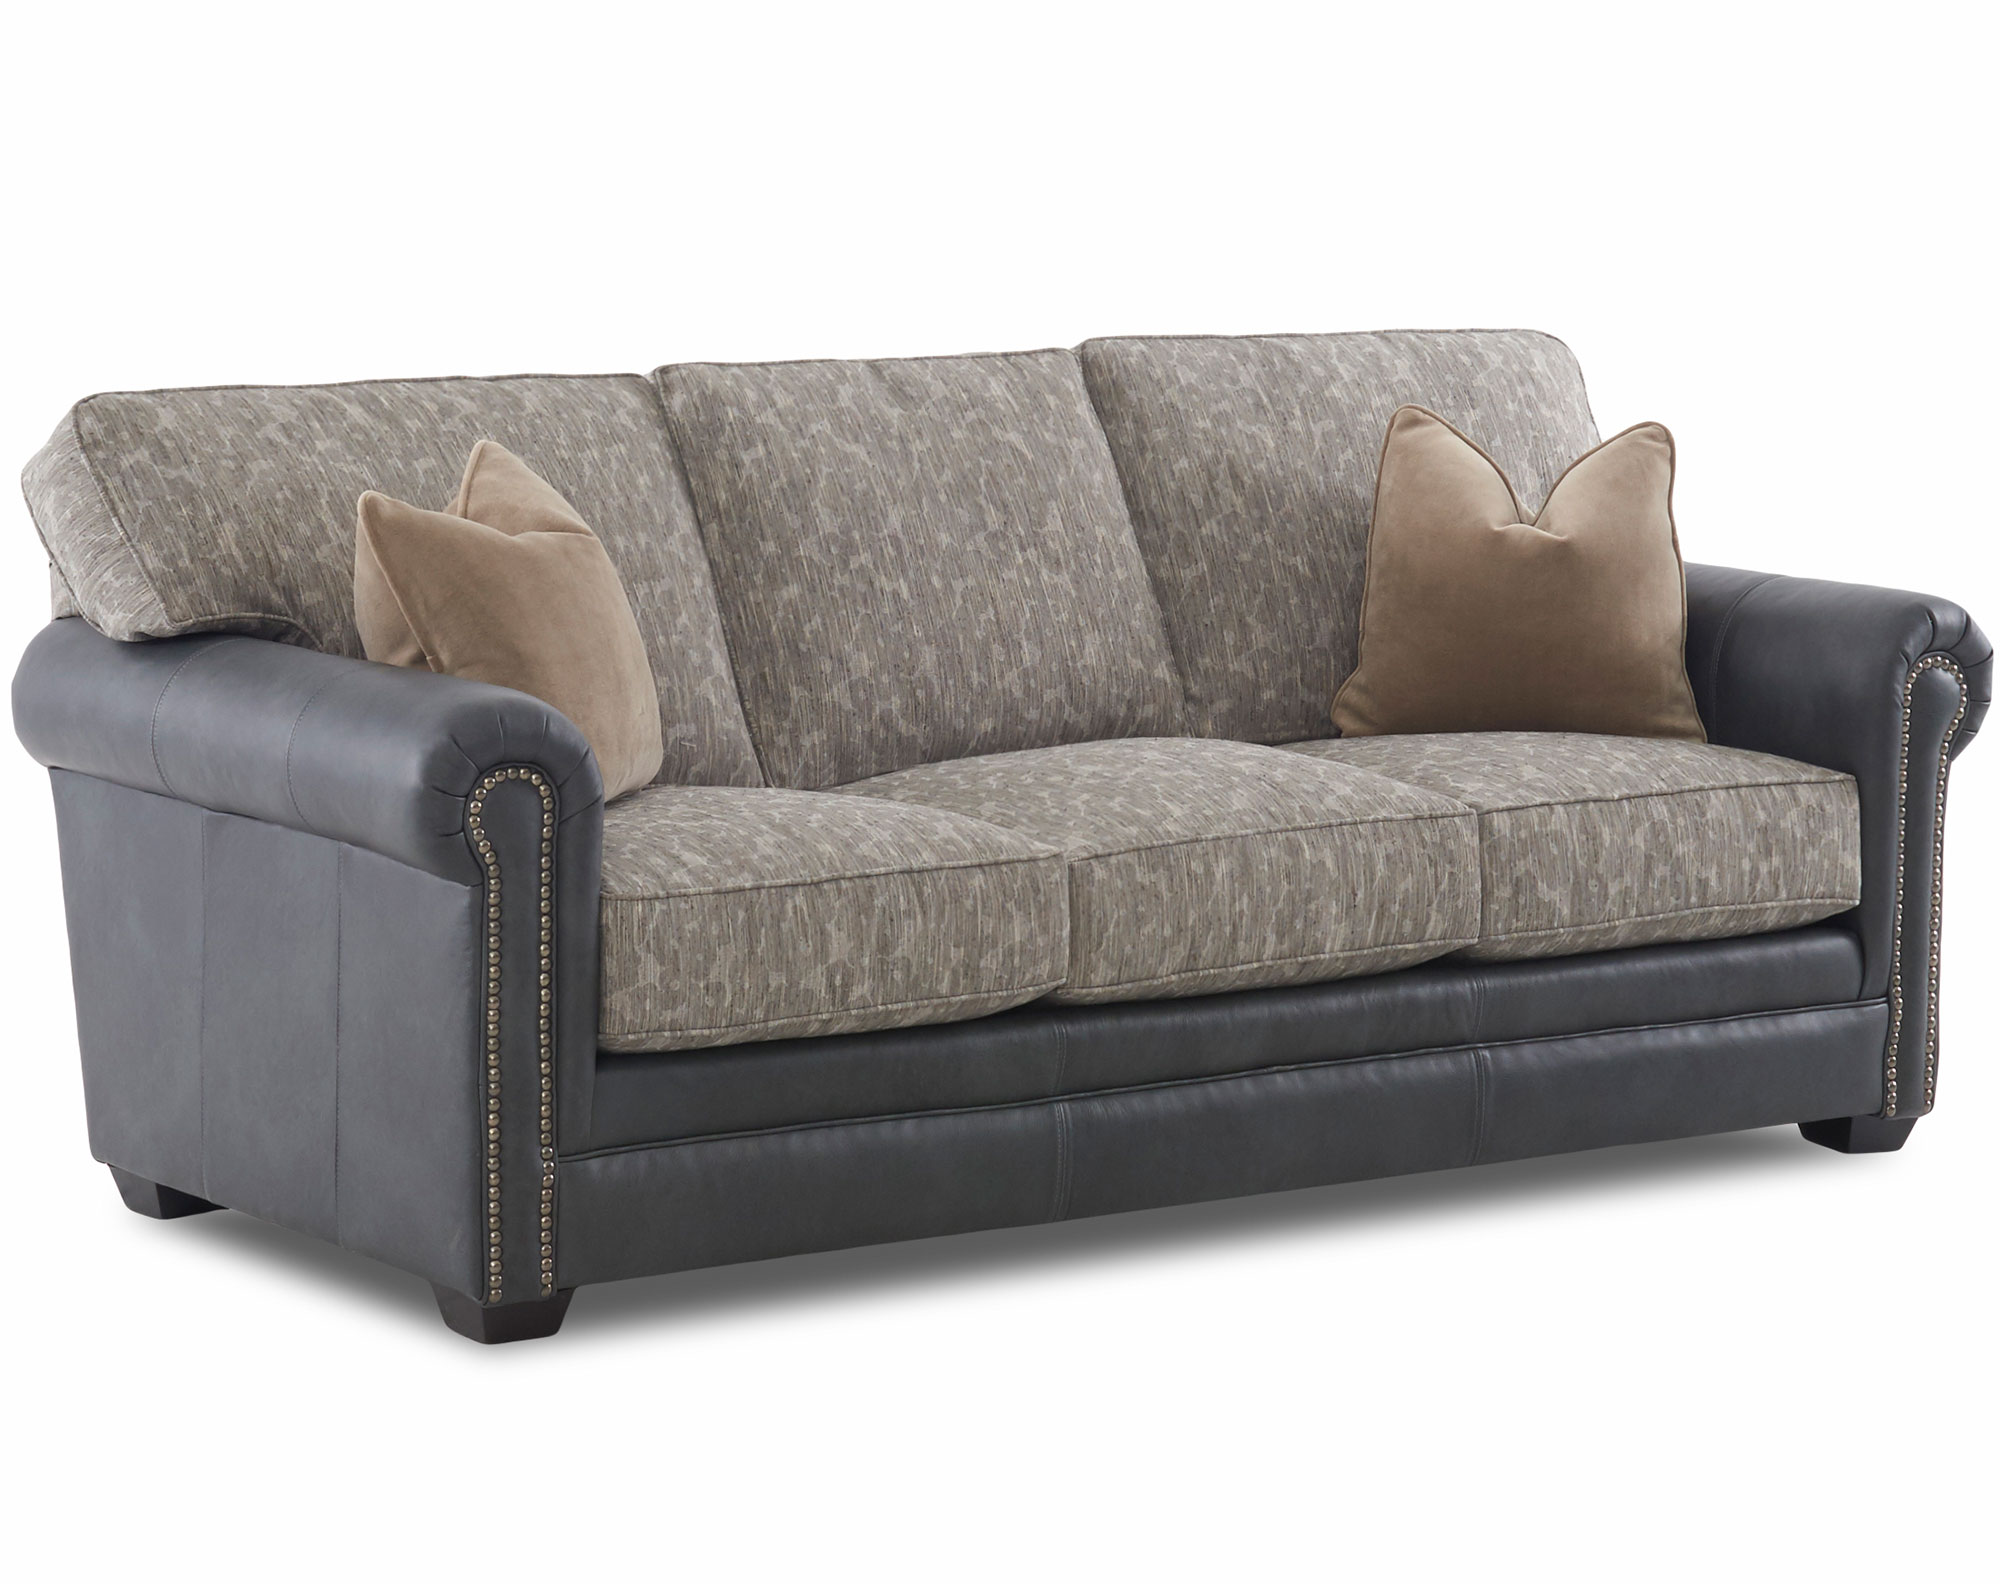 Daniel Leather 90 Queen Sleeper Sofa Sofas And Sectionals